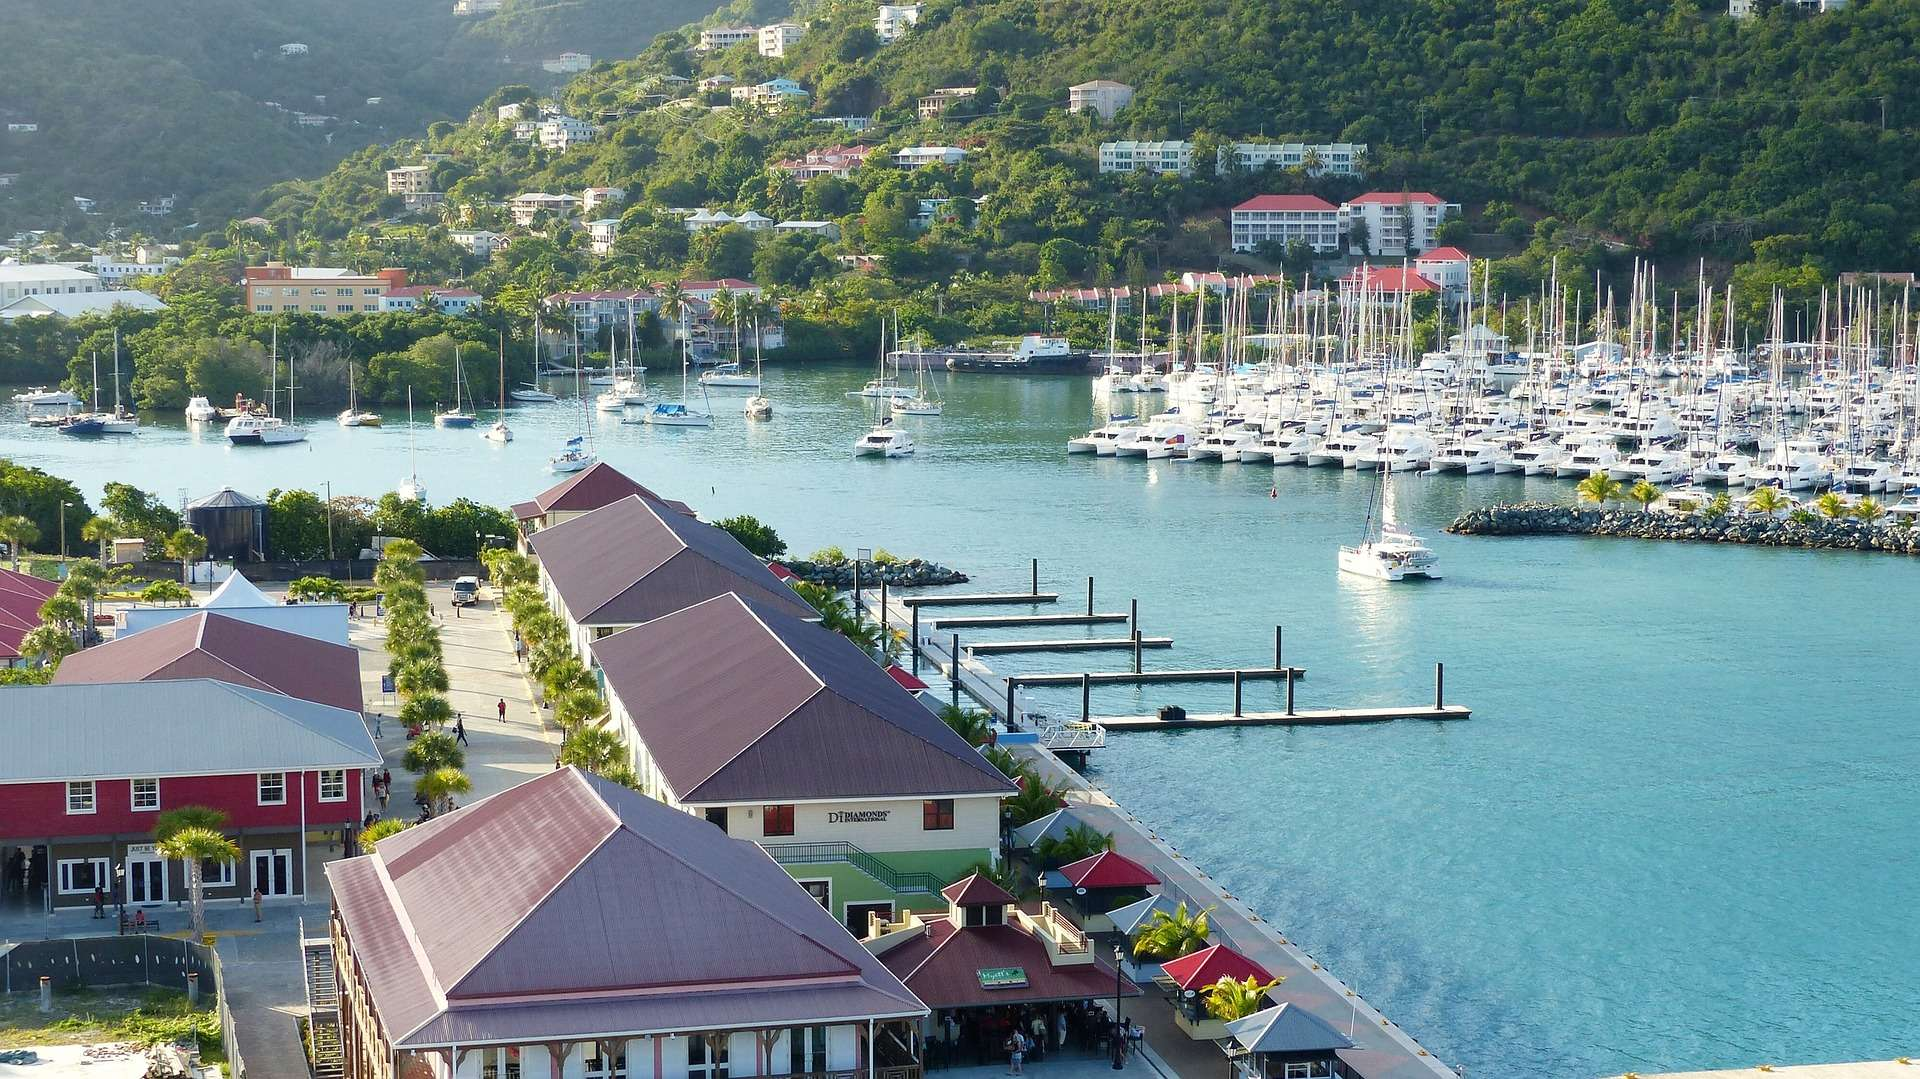 Road Town, Tortola, BVI. More than one way to get there!